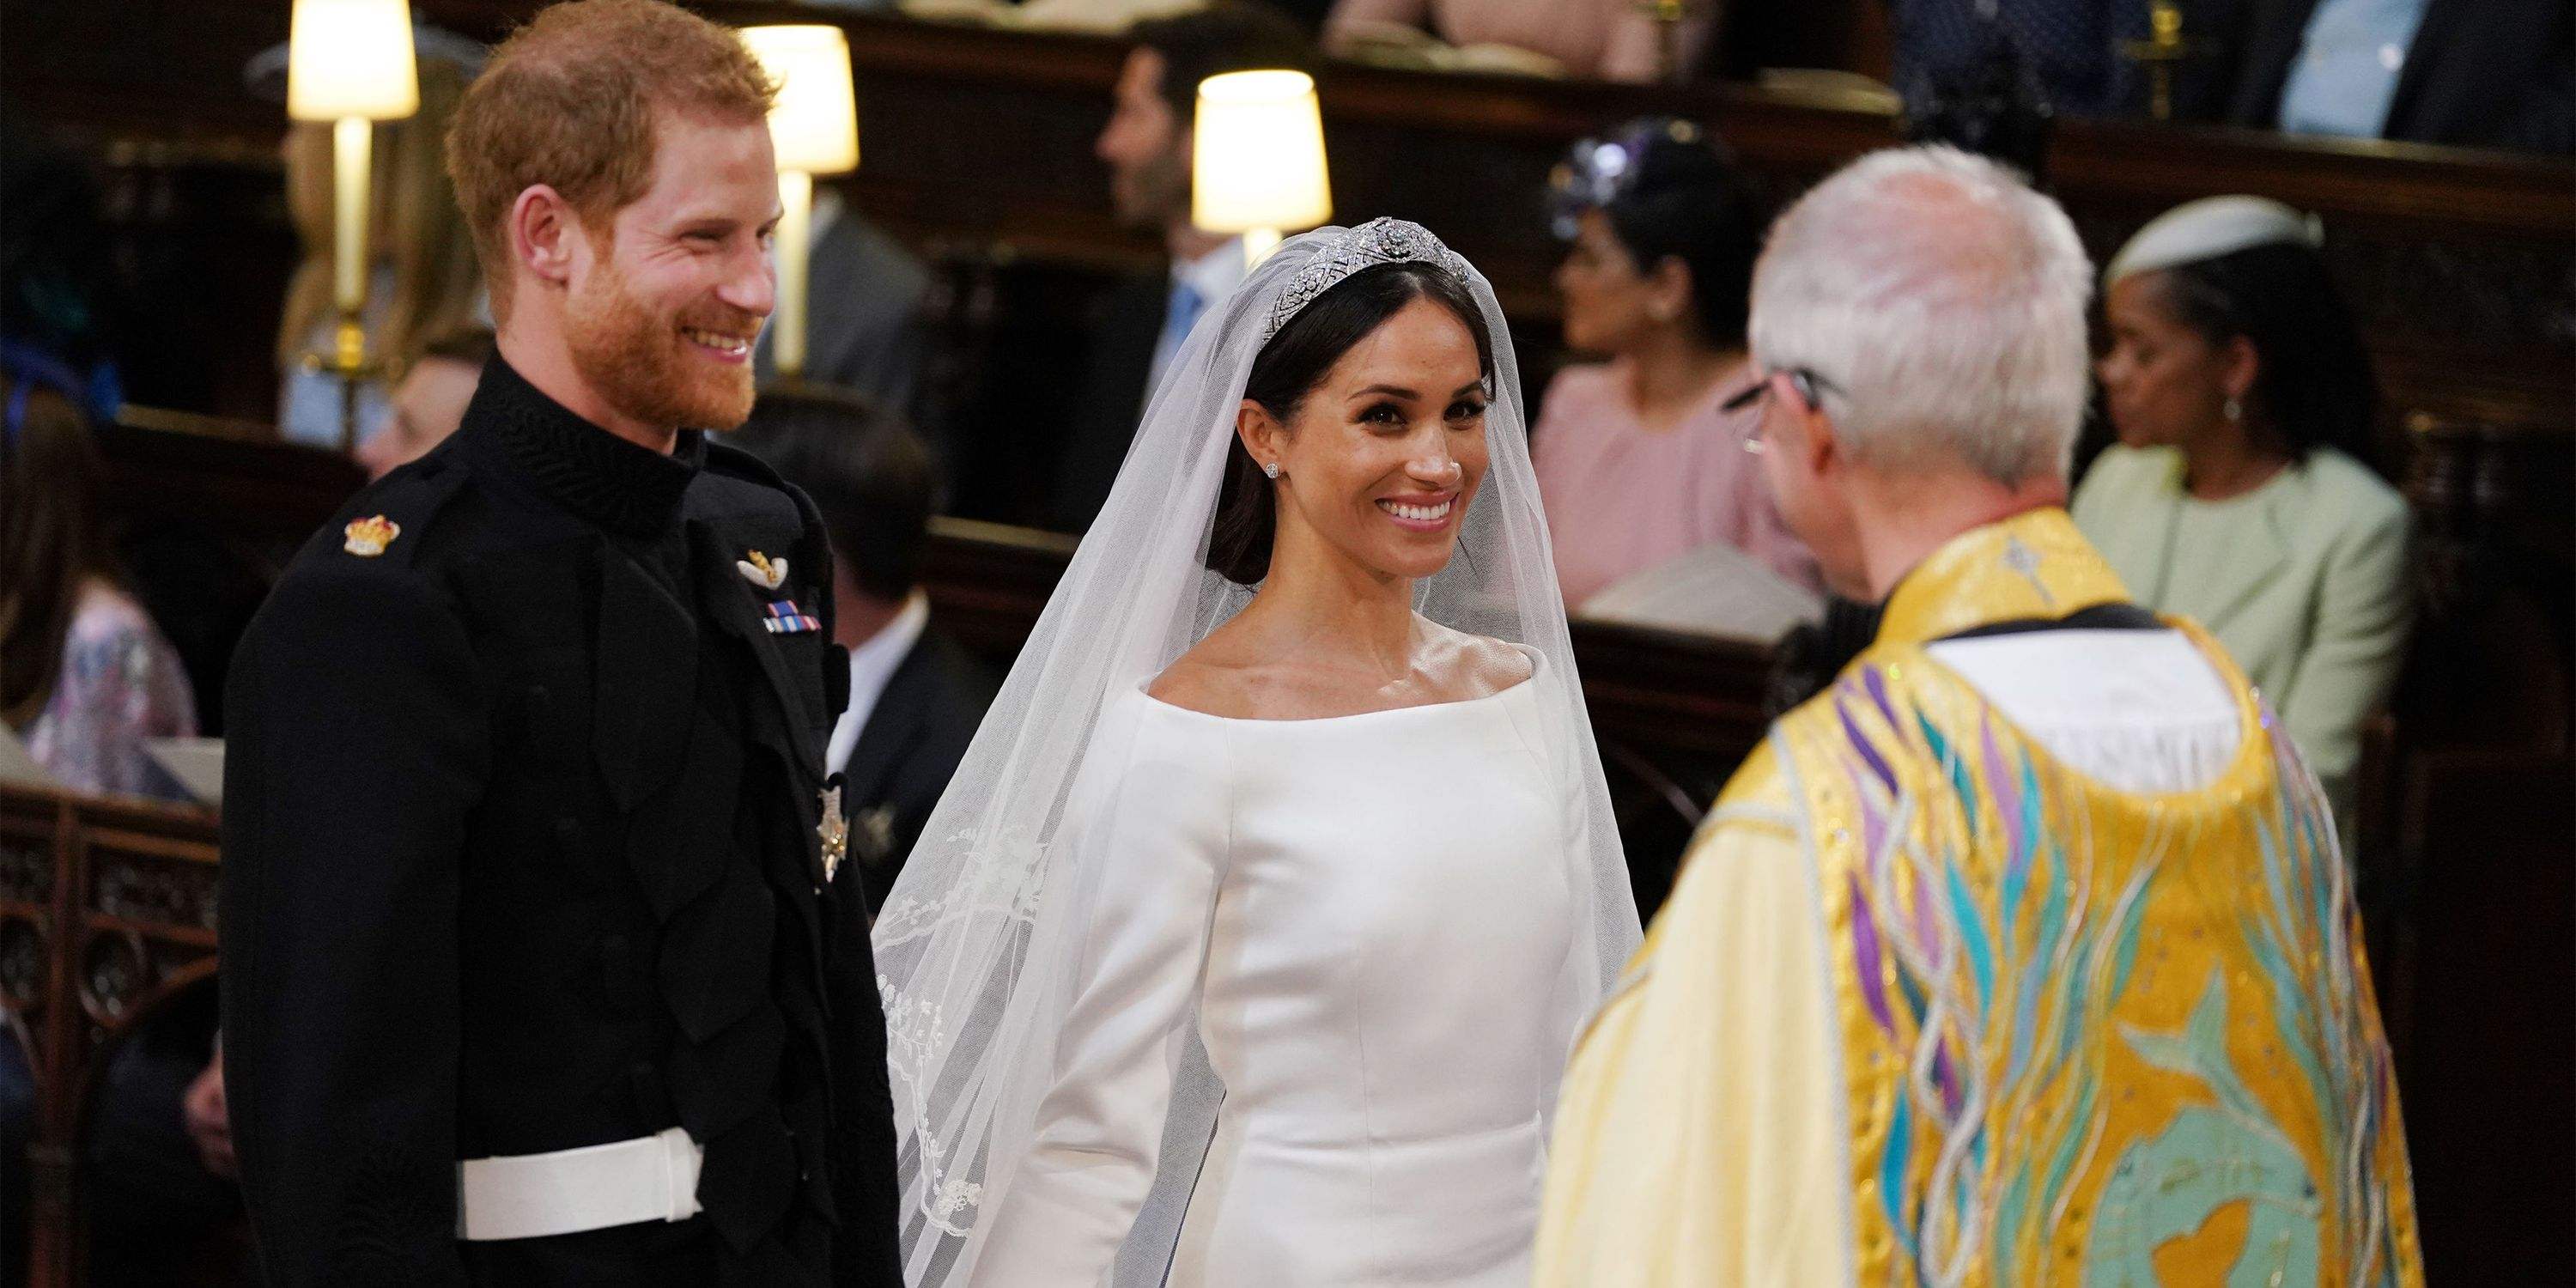 3662dfa8f70 52 Best Prince Harry and Meghan Markle Wedding Photos - Royal Wedding Recap